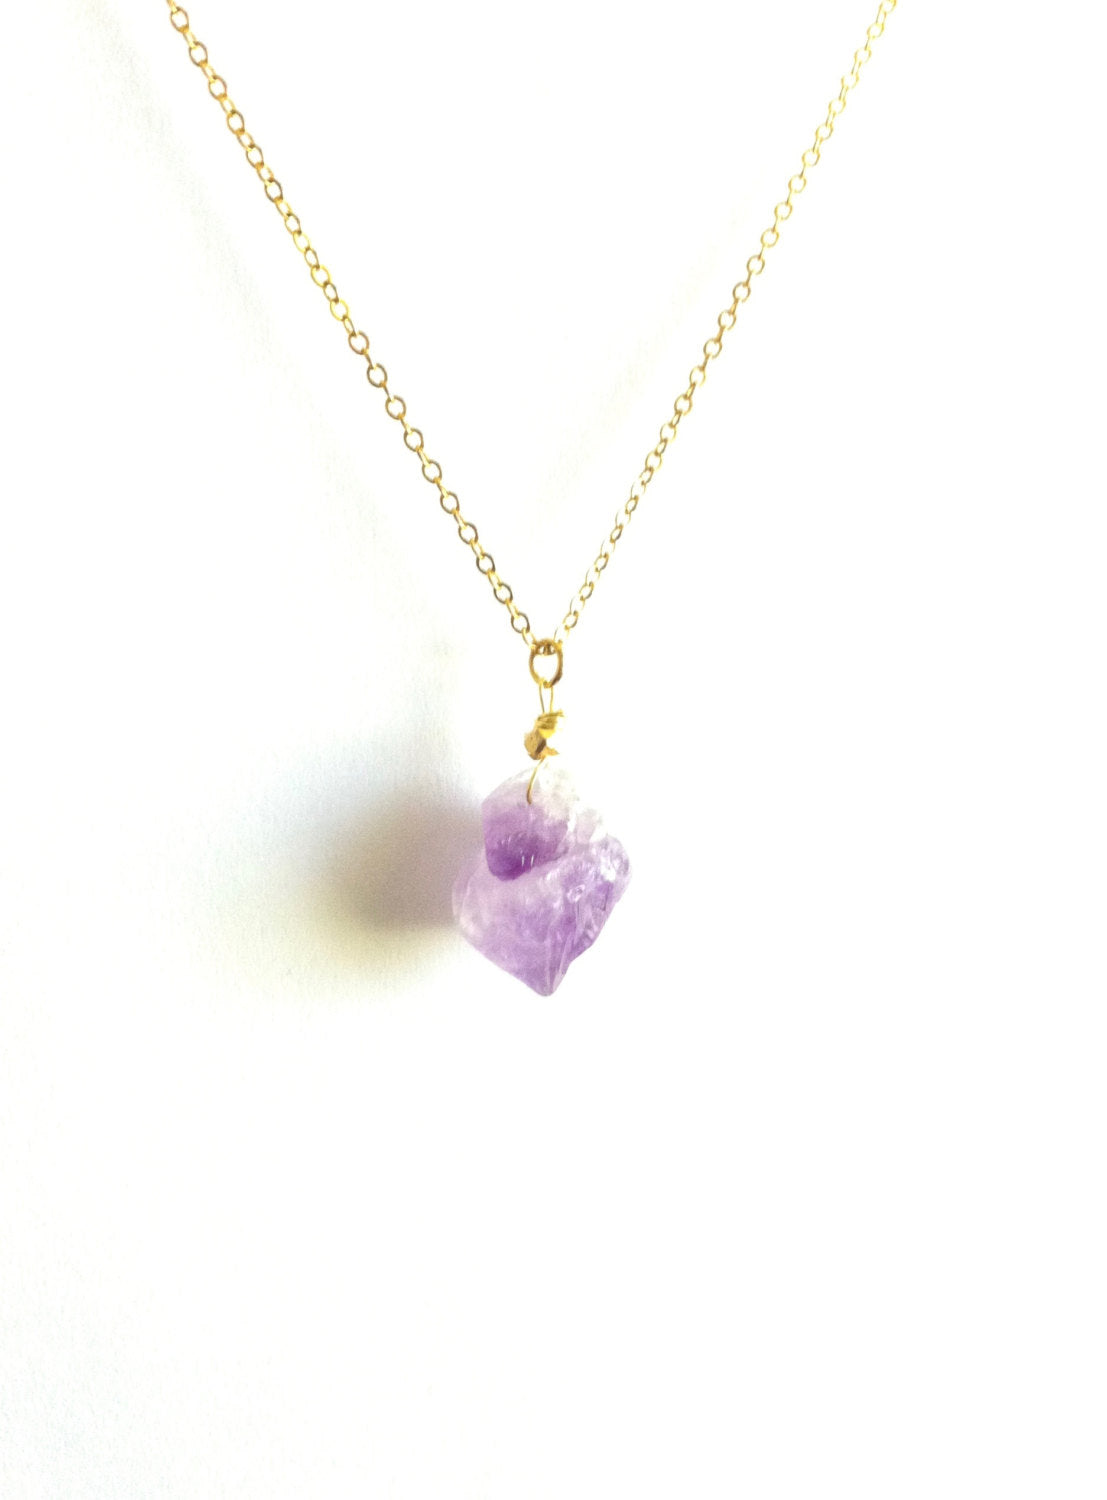 Raw Amethyst Necklace | Natural Raw Amethyst Jewelry | IB Jewelry